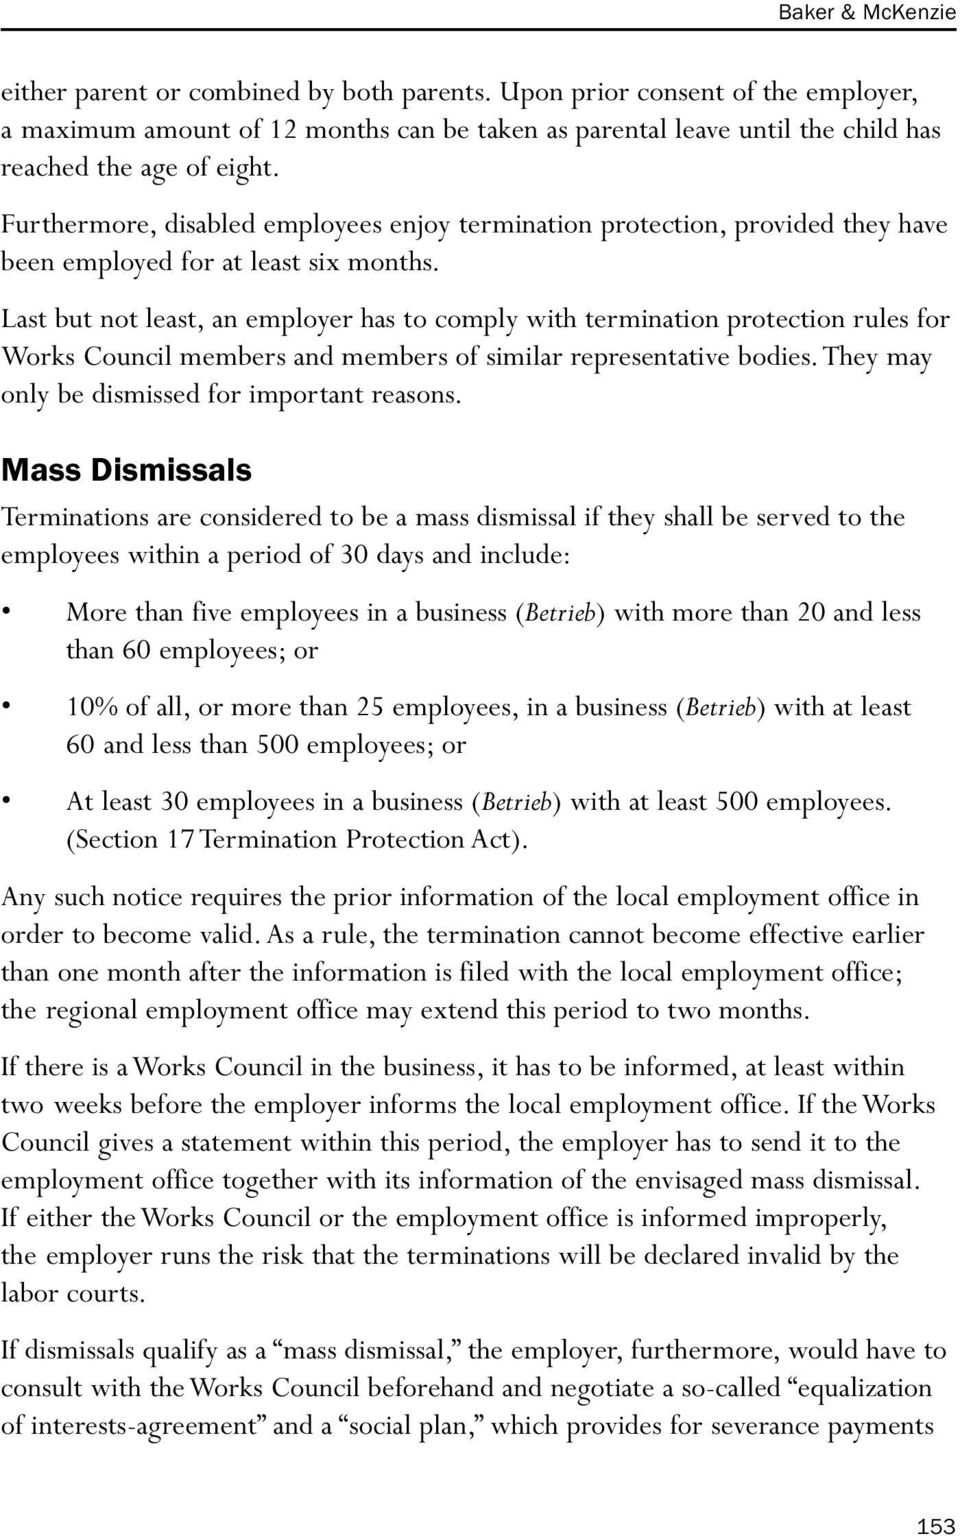 Furthermore, disabled employees enjoy termination protection, provided they have been employed for at least six months.